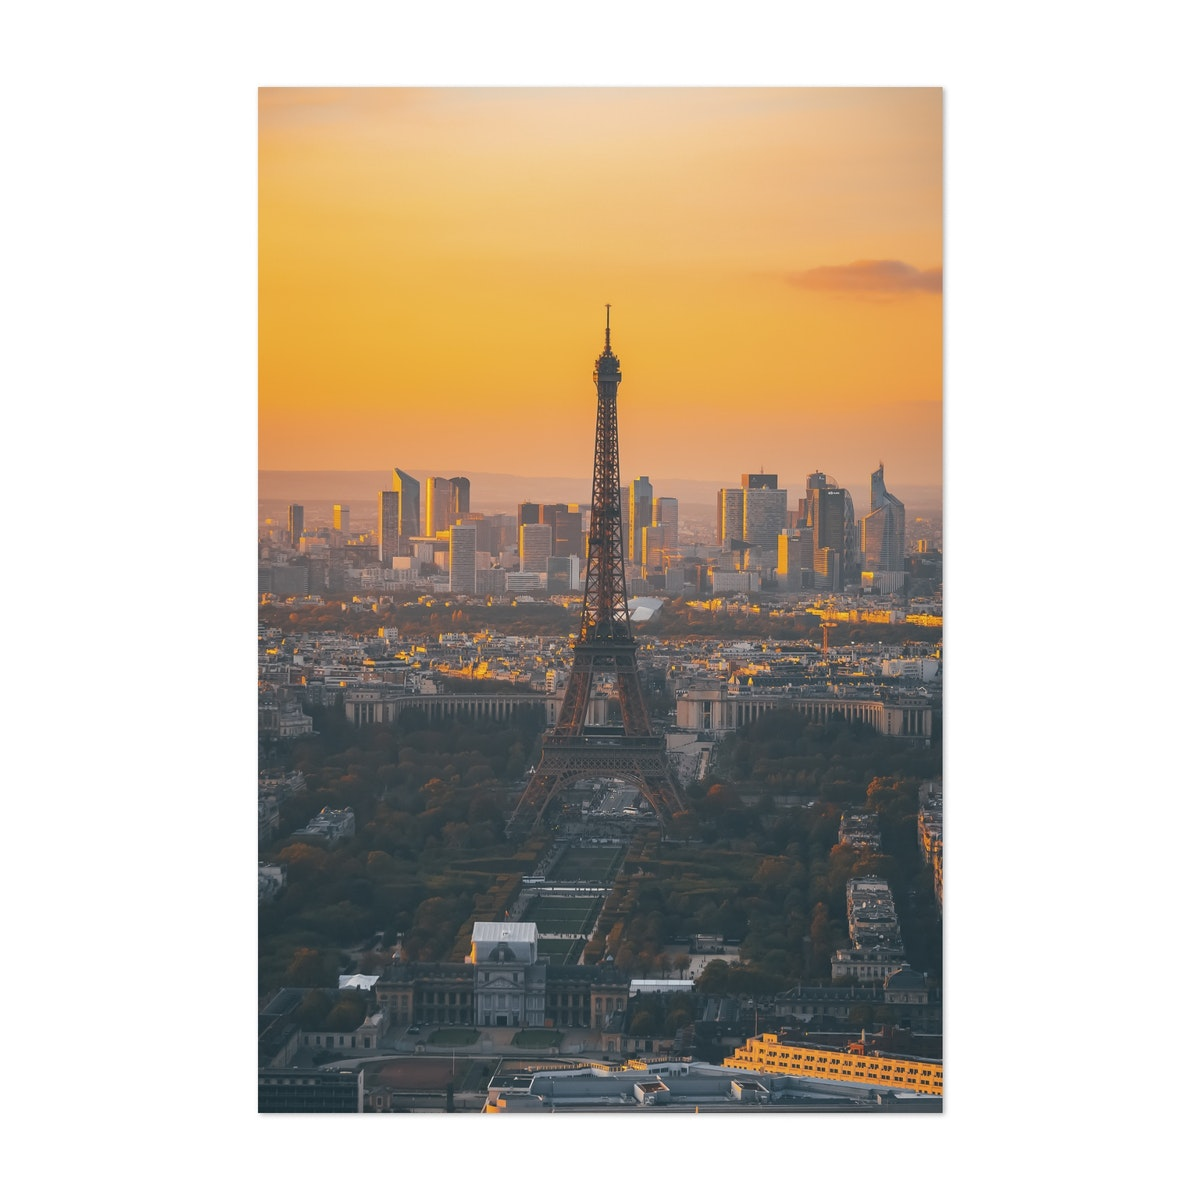 Eiffel Tower at Sunset 02